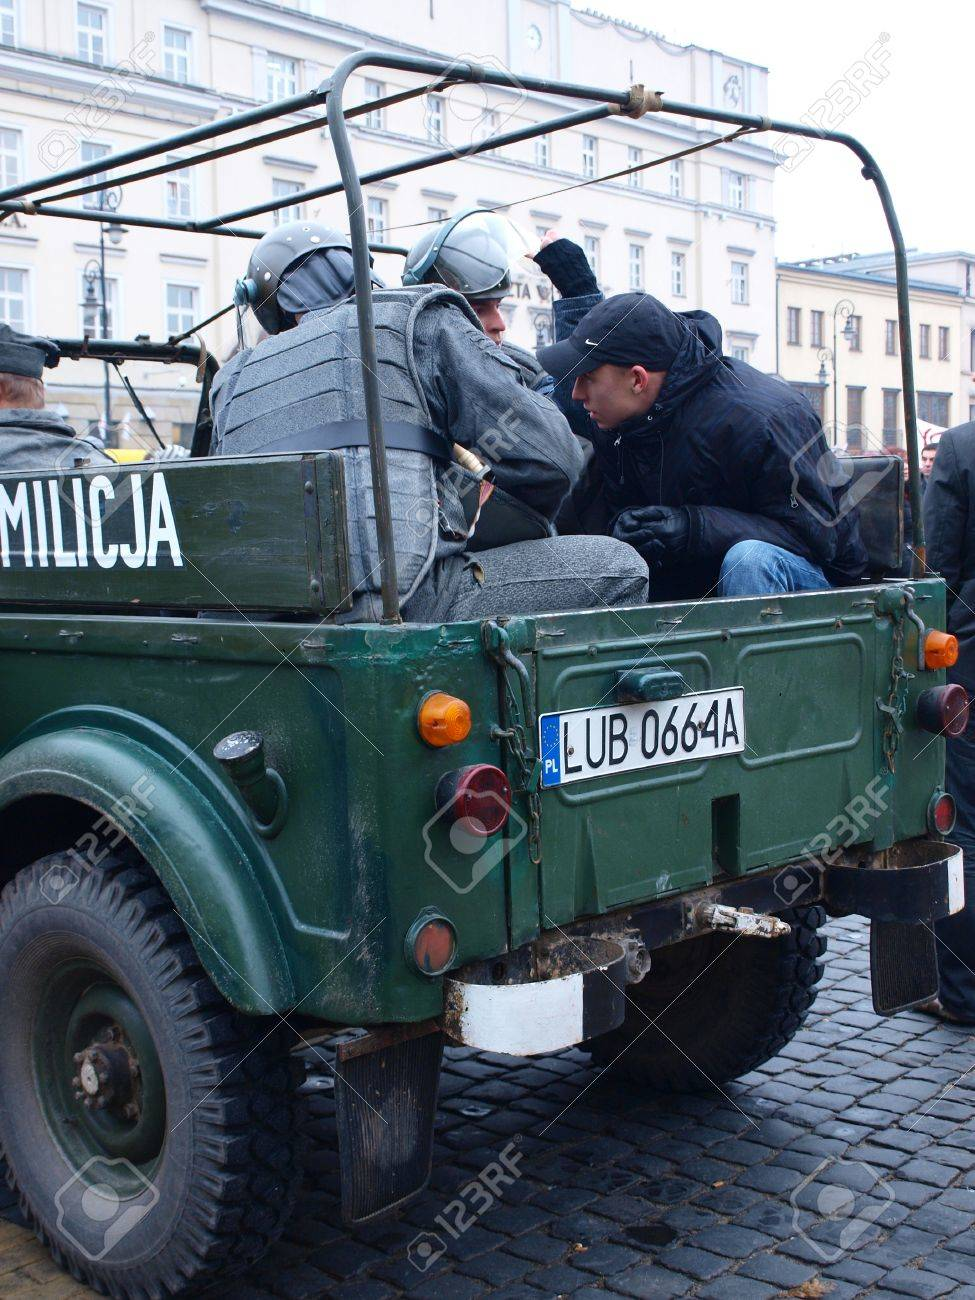 Celebrations of the 30th Anniversary of introducing the Martial Law In Poland on December 13th 1981: staging of the demonstrations against the introduction of the Martial Law, arrested opponents in ZOMO car, Lublin, Poland, Dec, 13th 2011. Stock Photo - 11482292